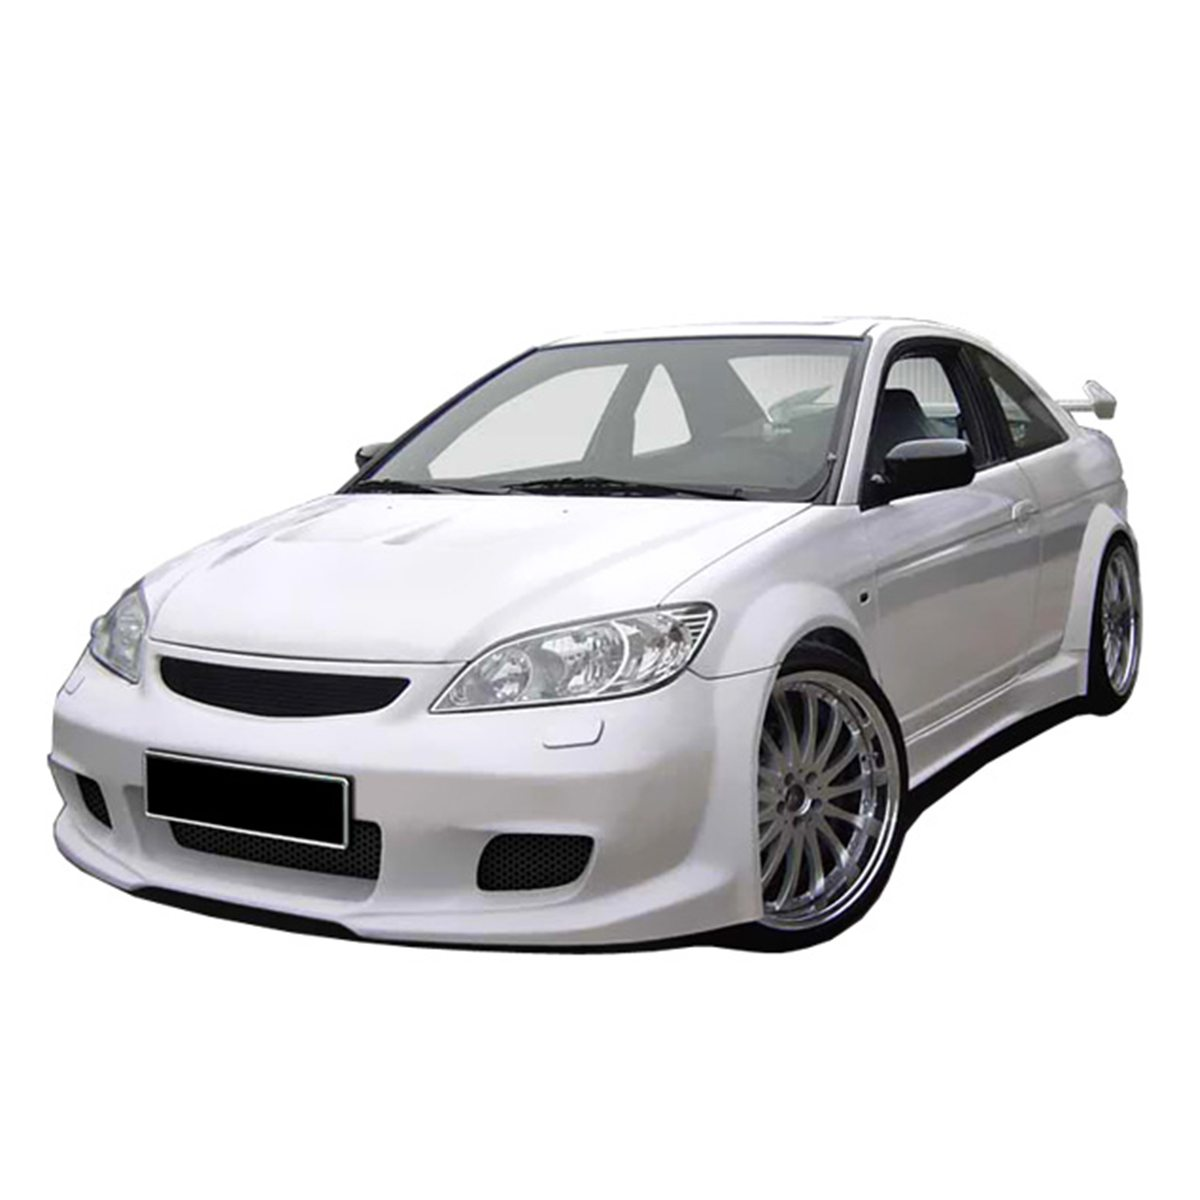 Honda-Civic-01-Coupe-LKA-Frt-PCS095